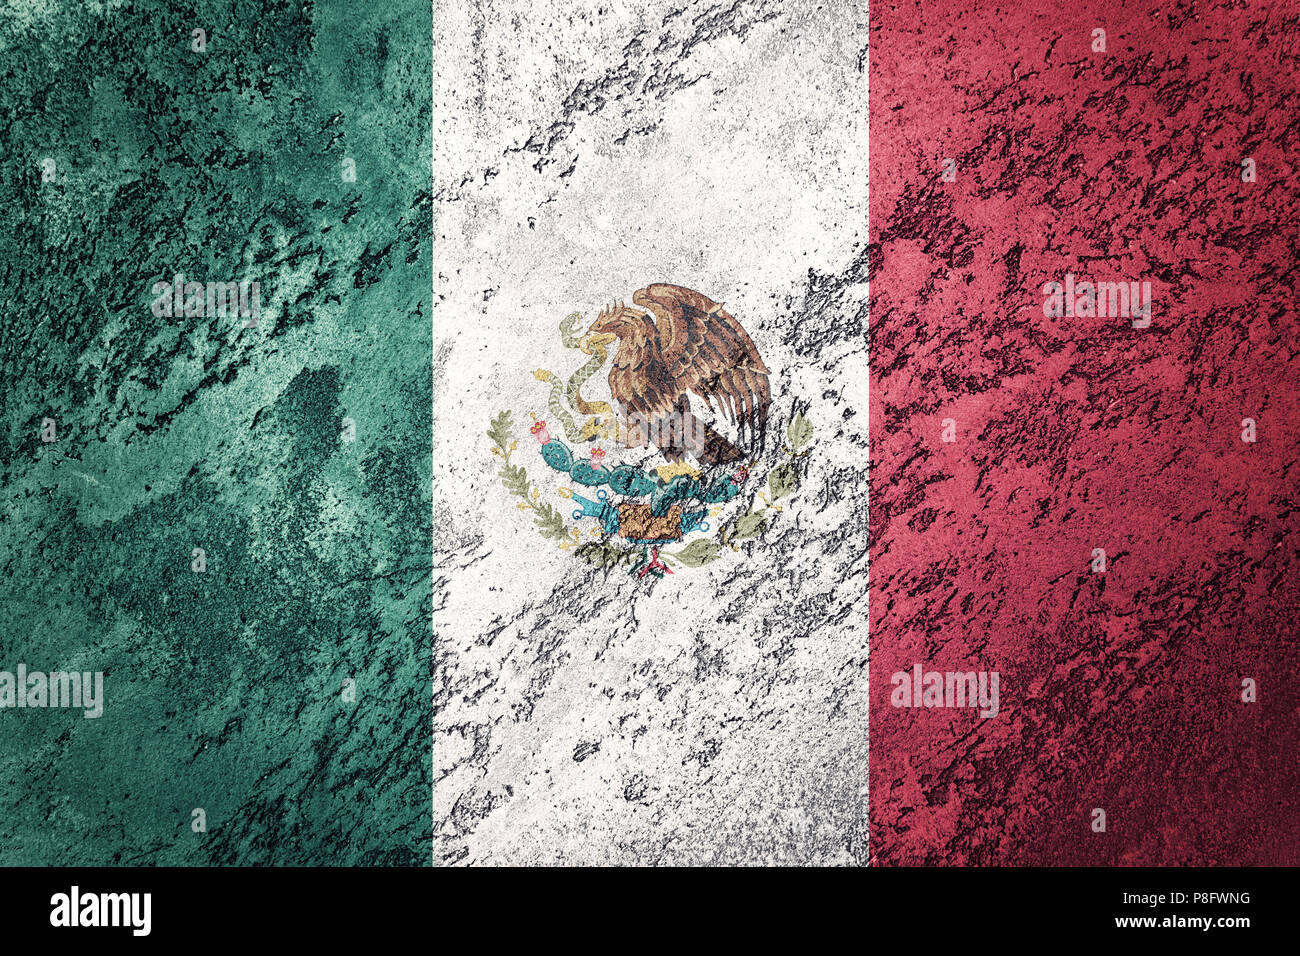 Grunge Mexico flag. Mexican flag with grunge texture. - Stock Image